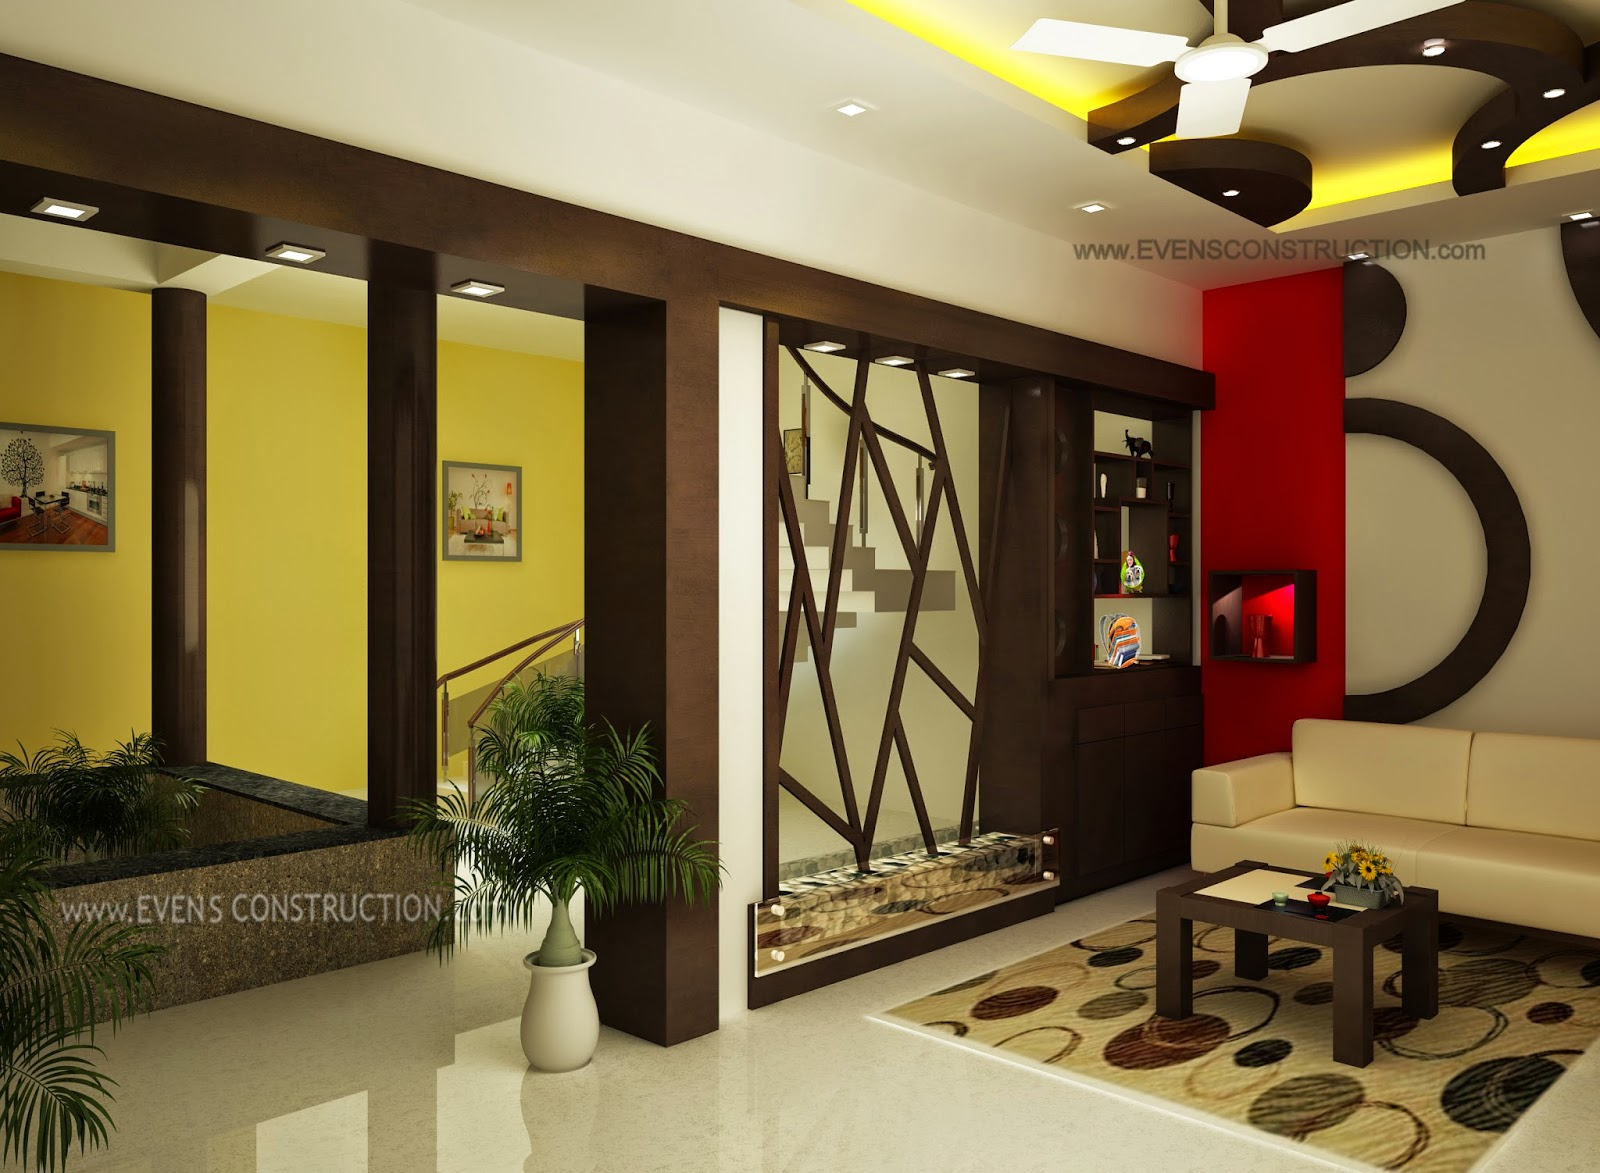 Evens construction pvt ltd january 2015 for Home dining hall design